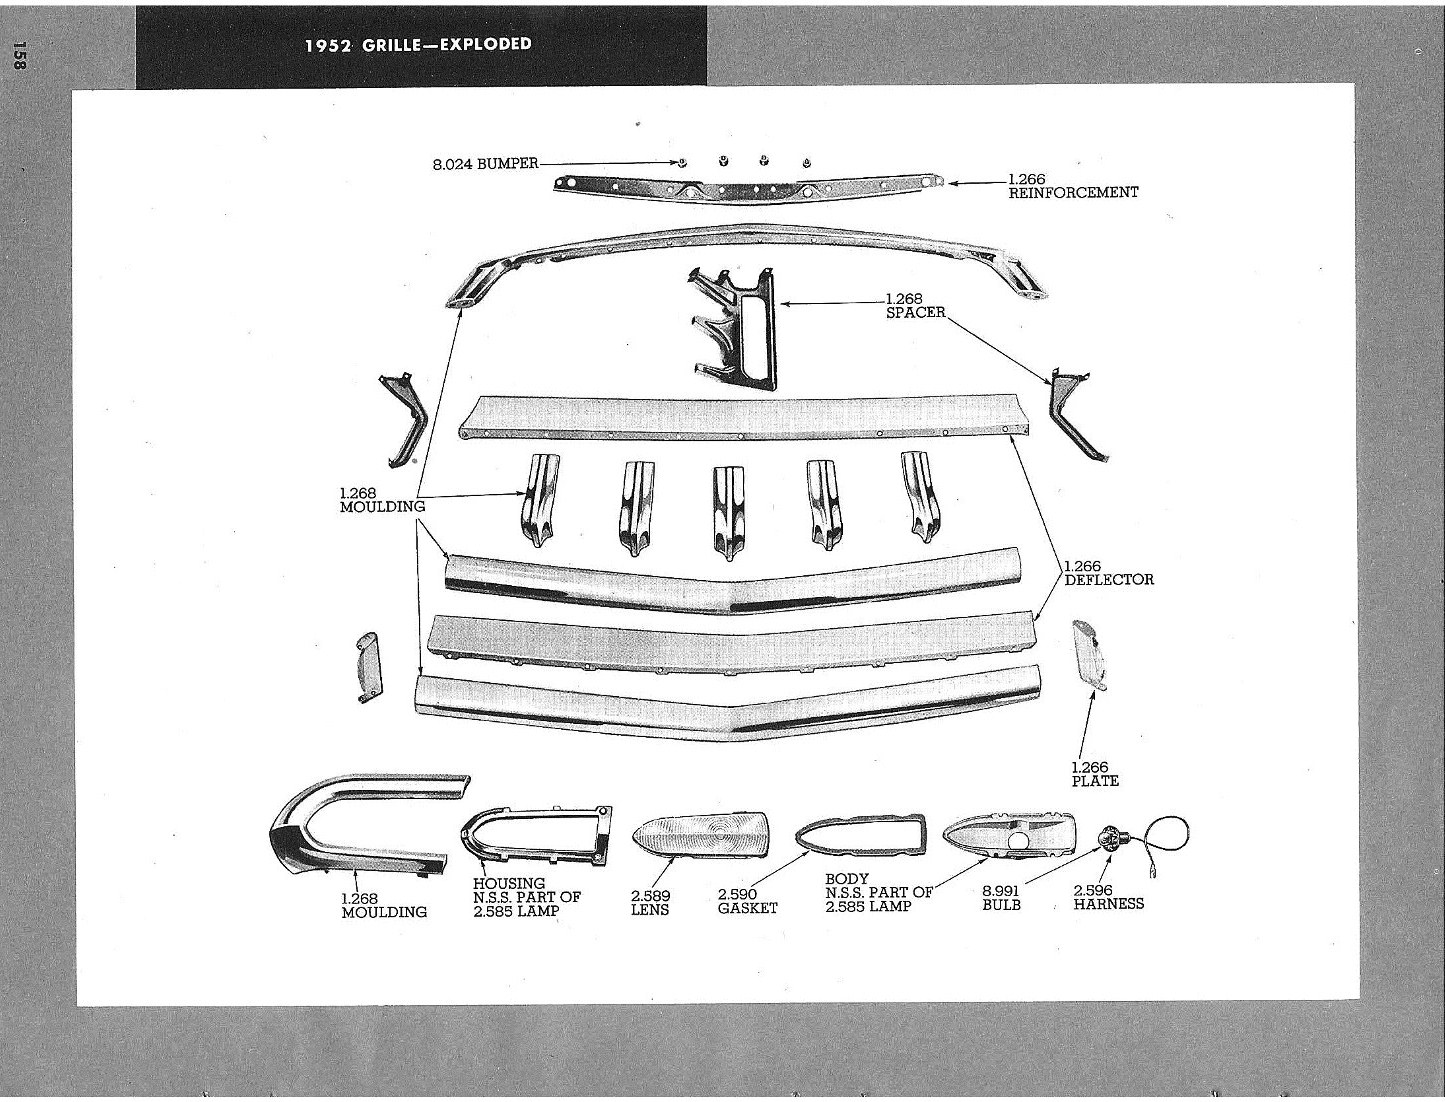 52 Grill Diagram - Chevy Message Forum